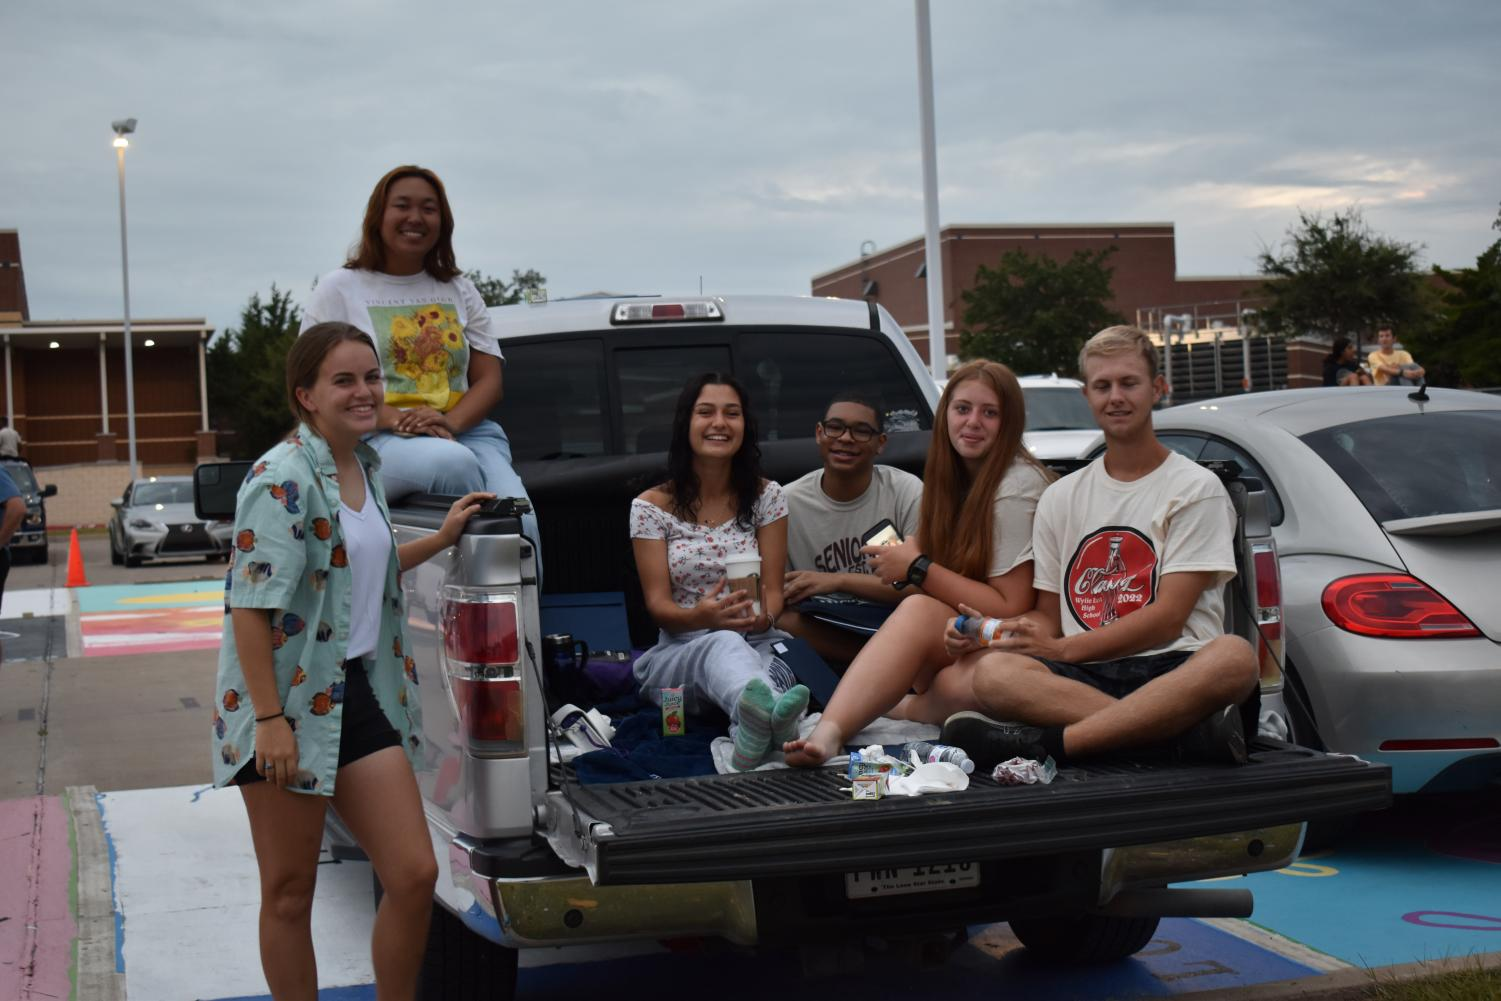 Rise and Shine \\ Enjoying snacks and each others company, class of 2022 meets in the parking lot to watch the sunrise at the Senior Sunrise Aug. 15.  Senior sunrise to me represents the beginning of a new chapter in our lives, senior Bailey Causey said. This year will be totally different from all the others, and it was fun to have a celebration to kick it off.